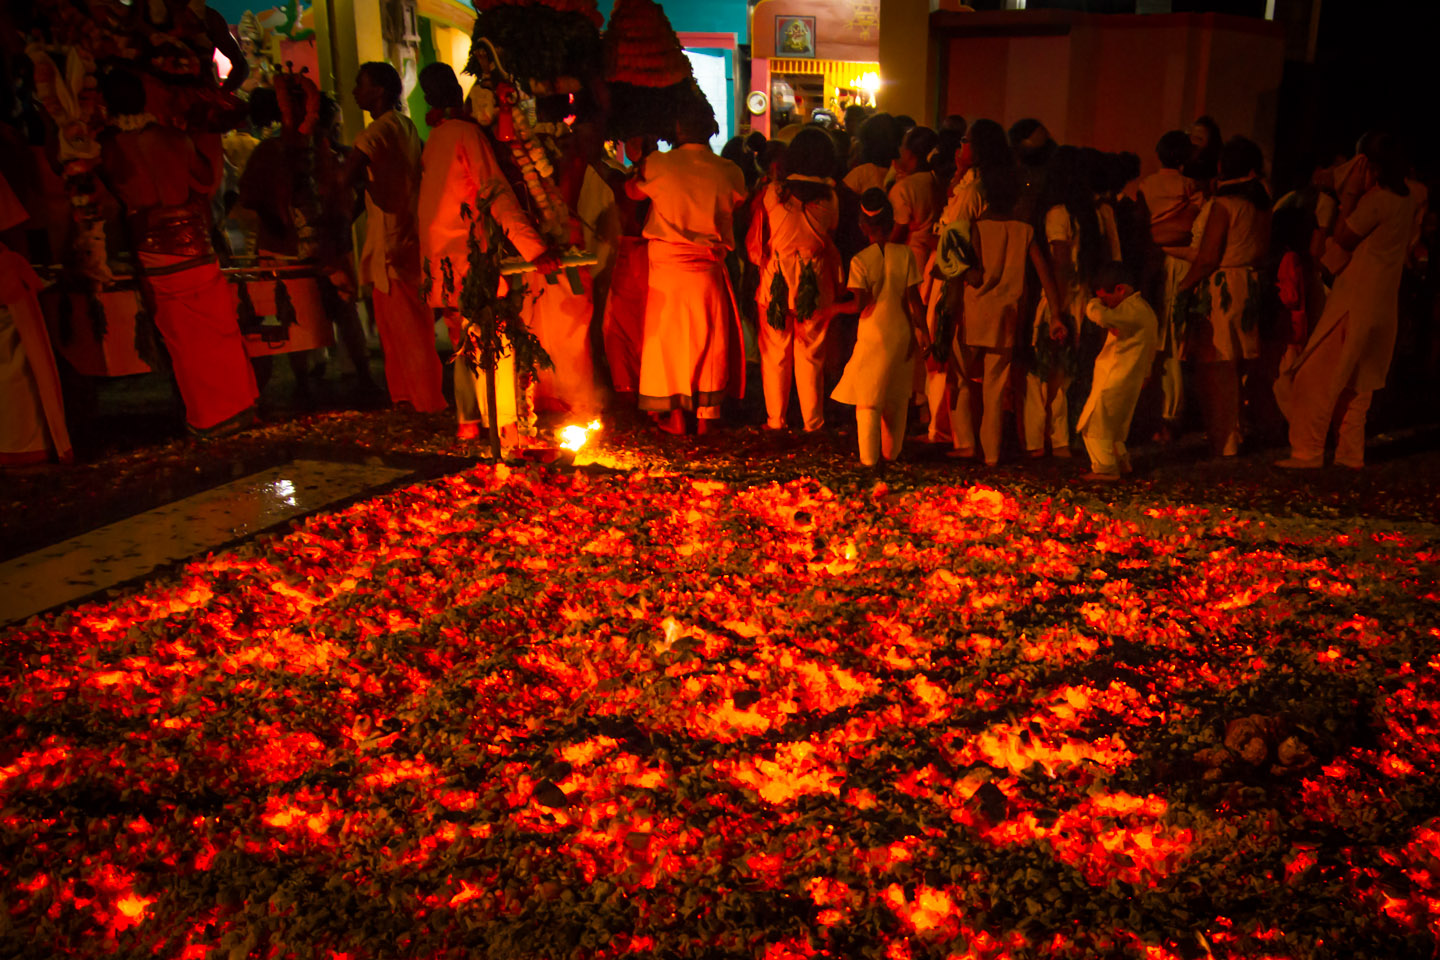 Hindu temple with glowing fire coals at Marche sur le feu firewalk La Reunion